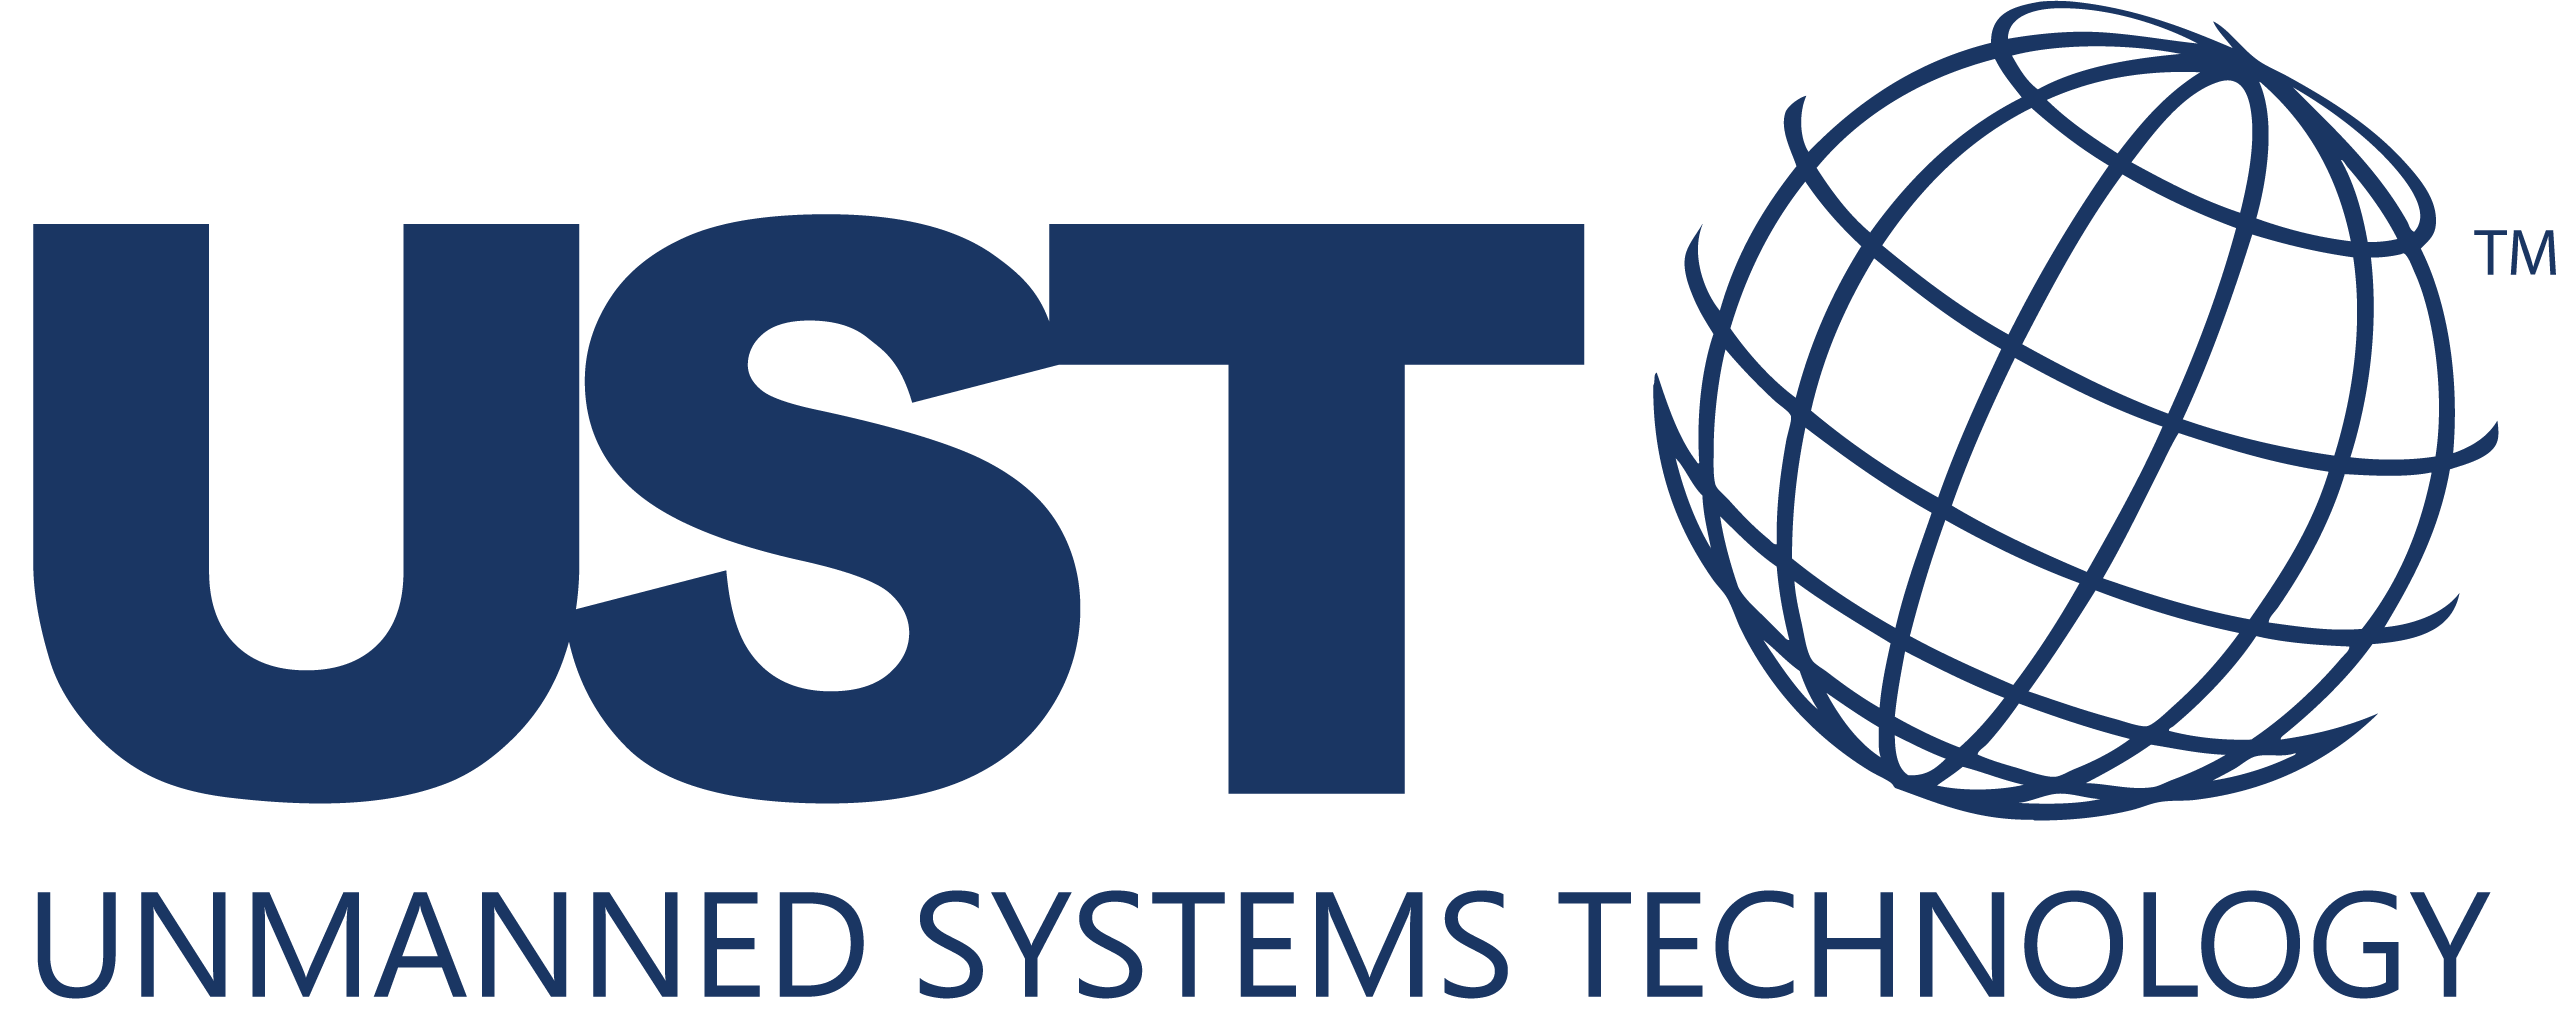 Unmanned Systems Technology (UST)